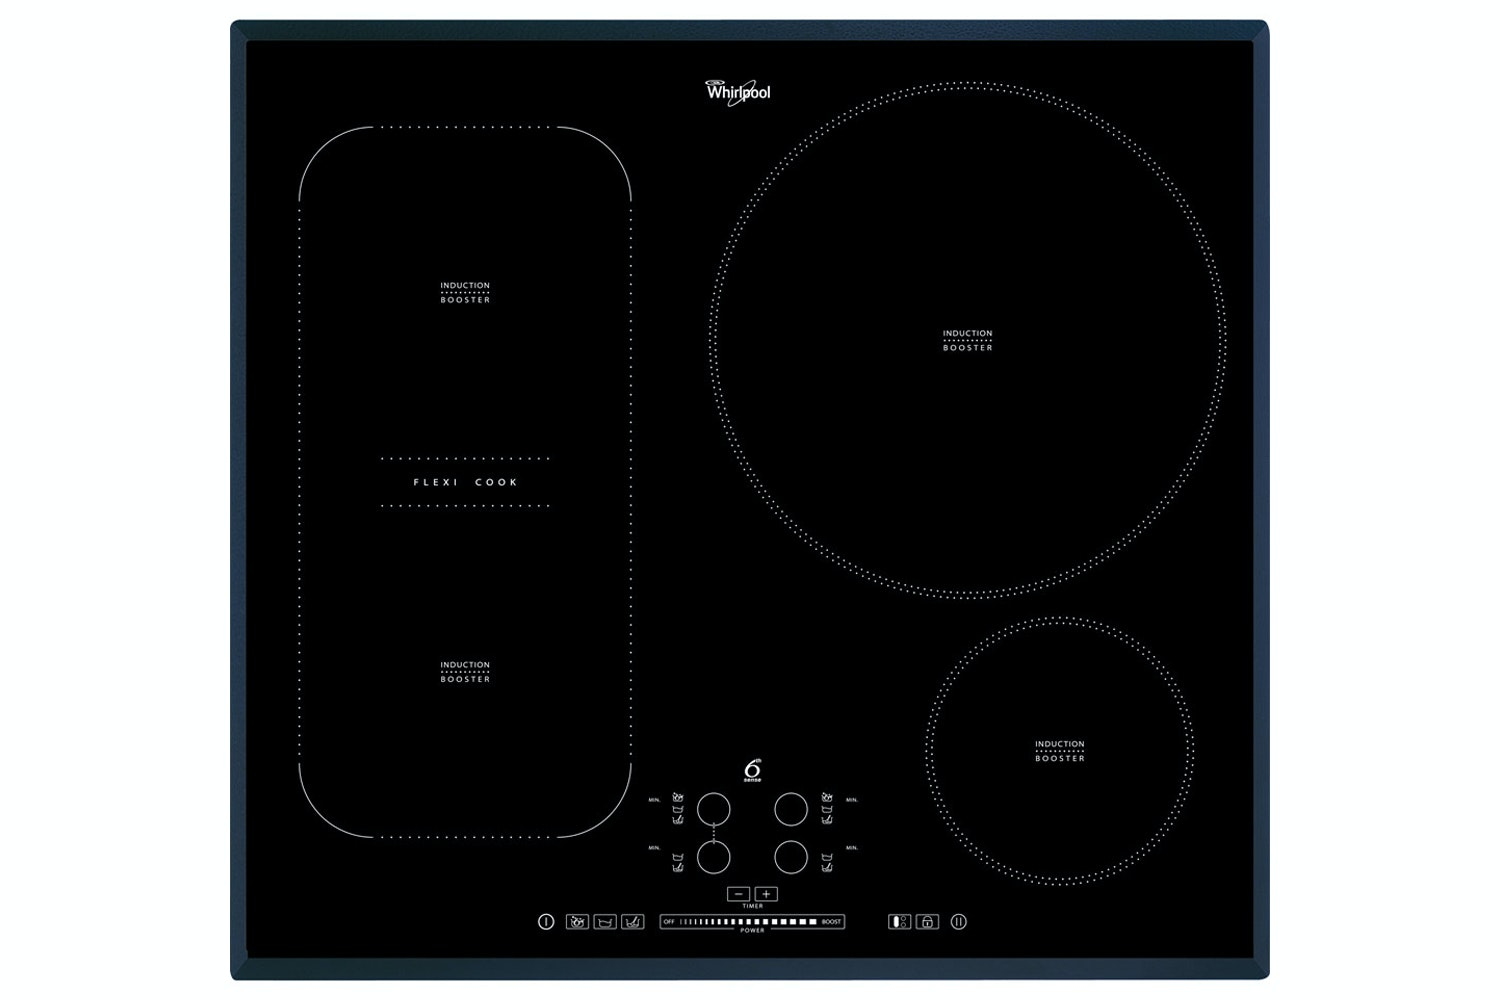 Whirlpool Induction Hob | ACM847/BA